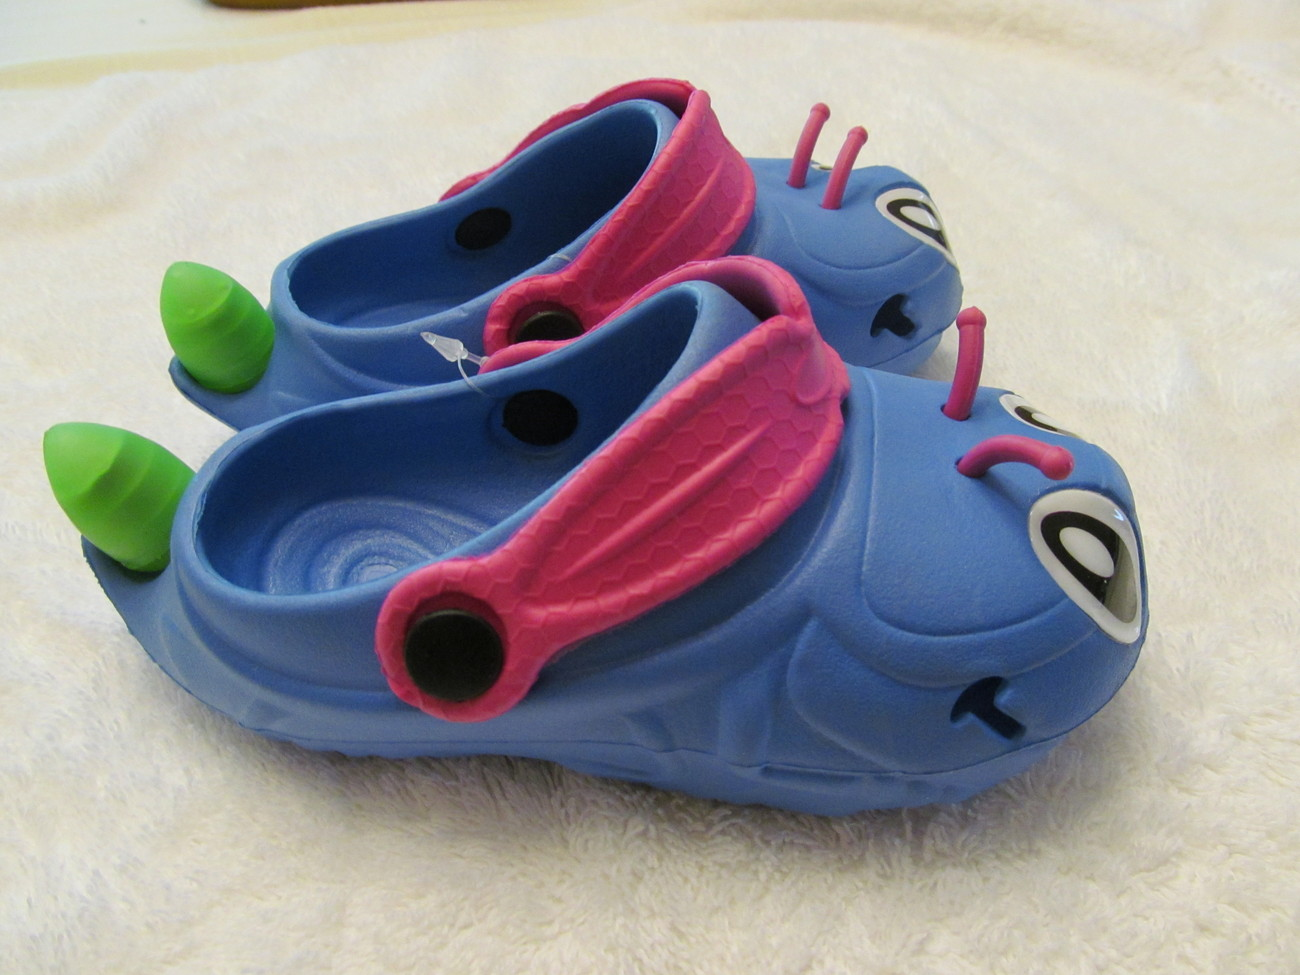 FIRE-FLY KIDS SHOES, THEY LIGHT UP, 10